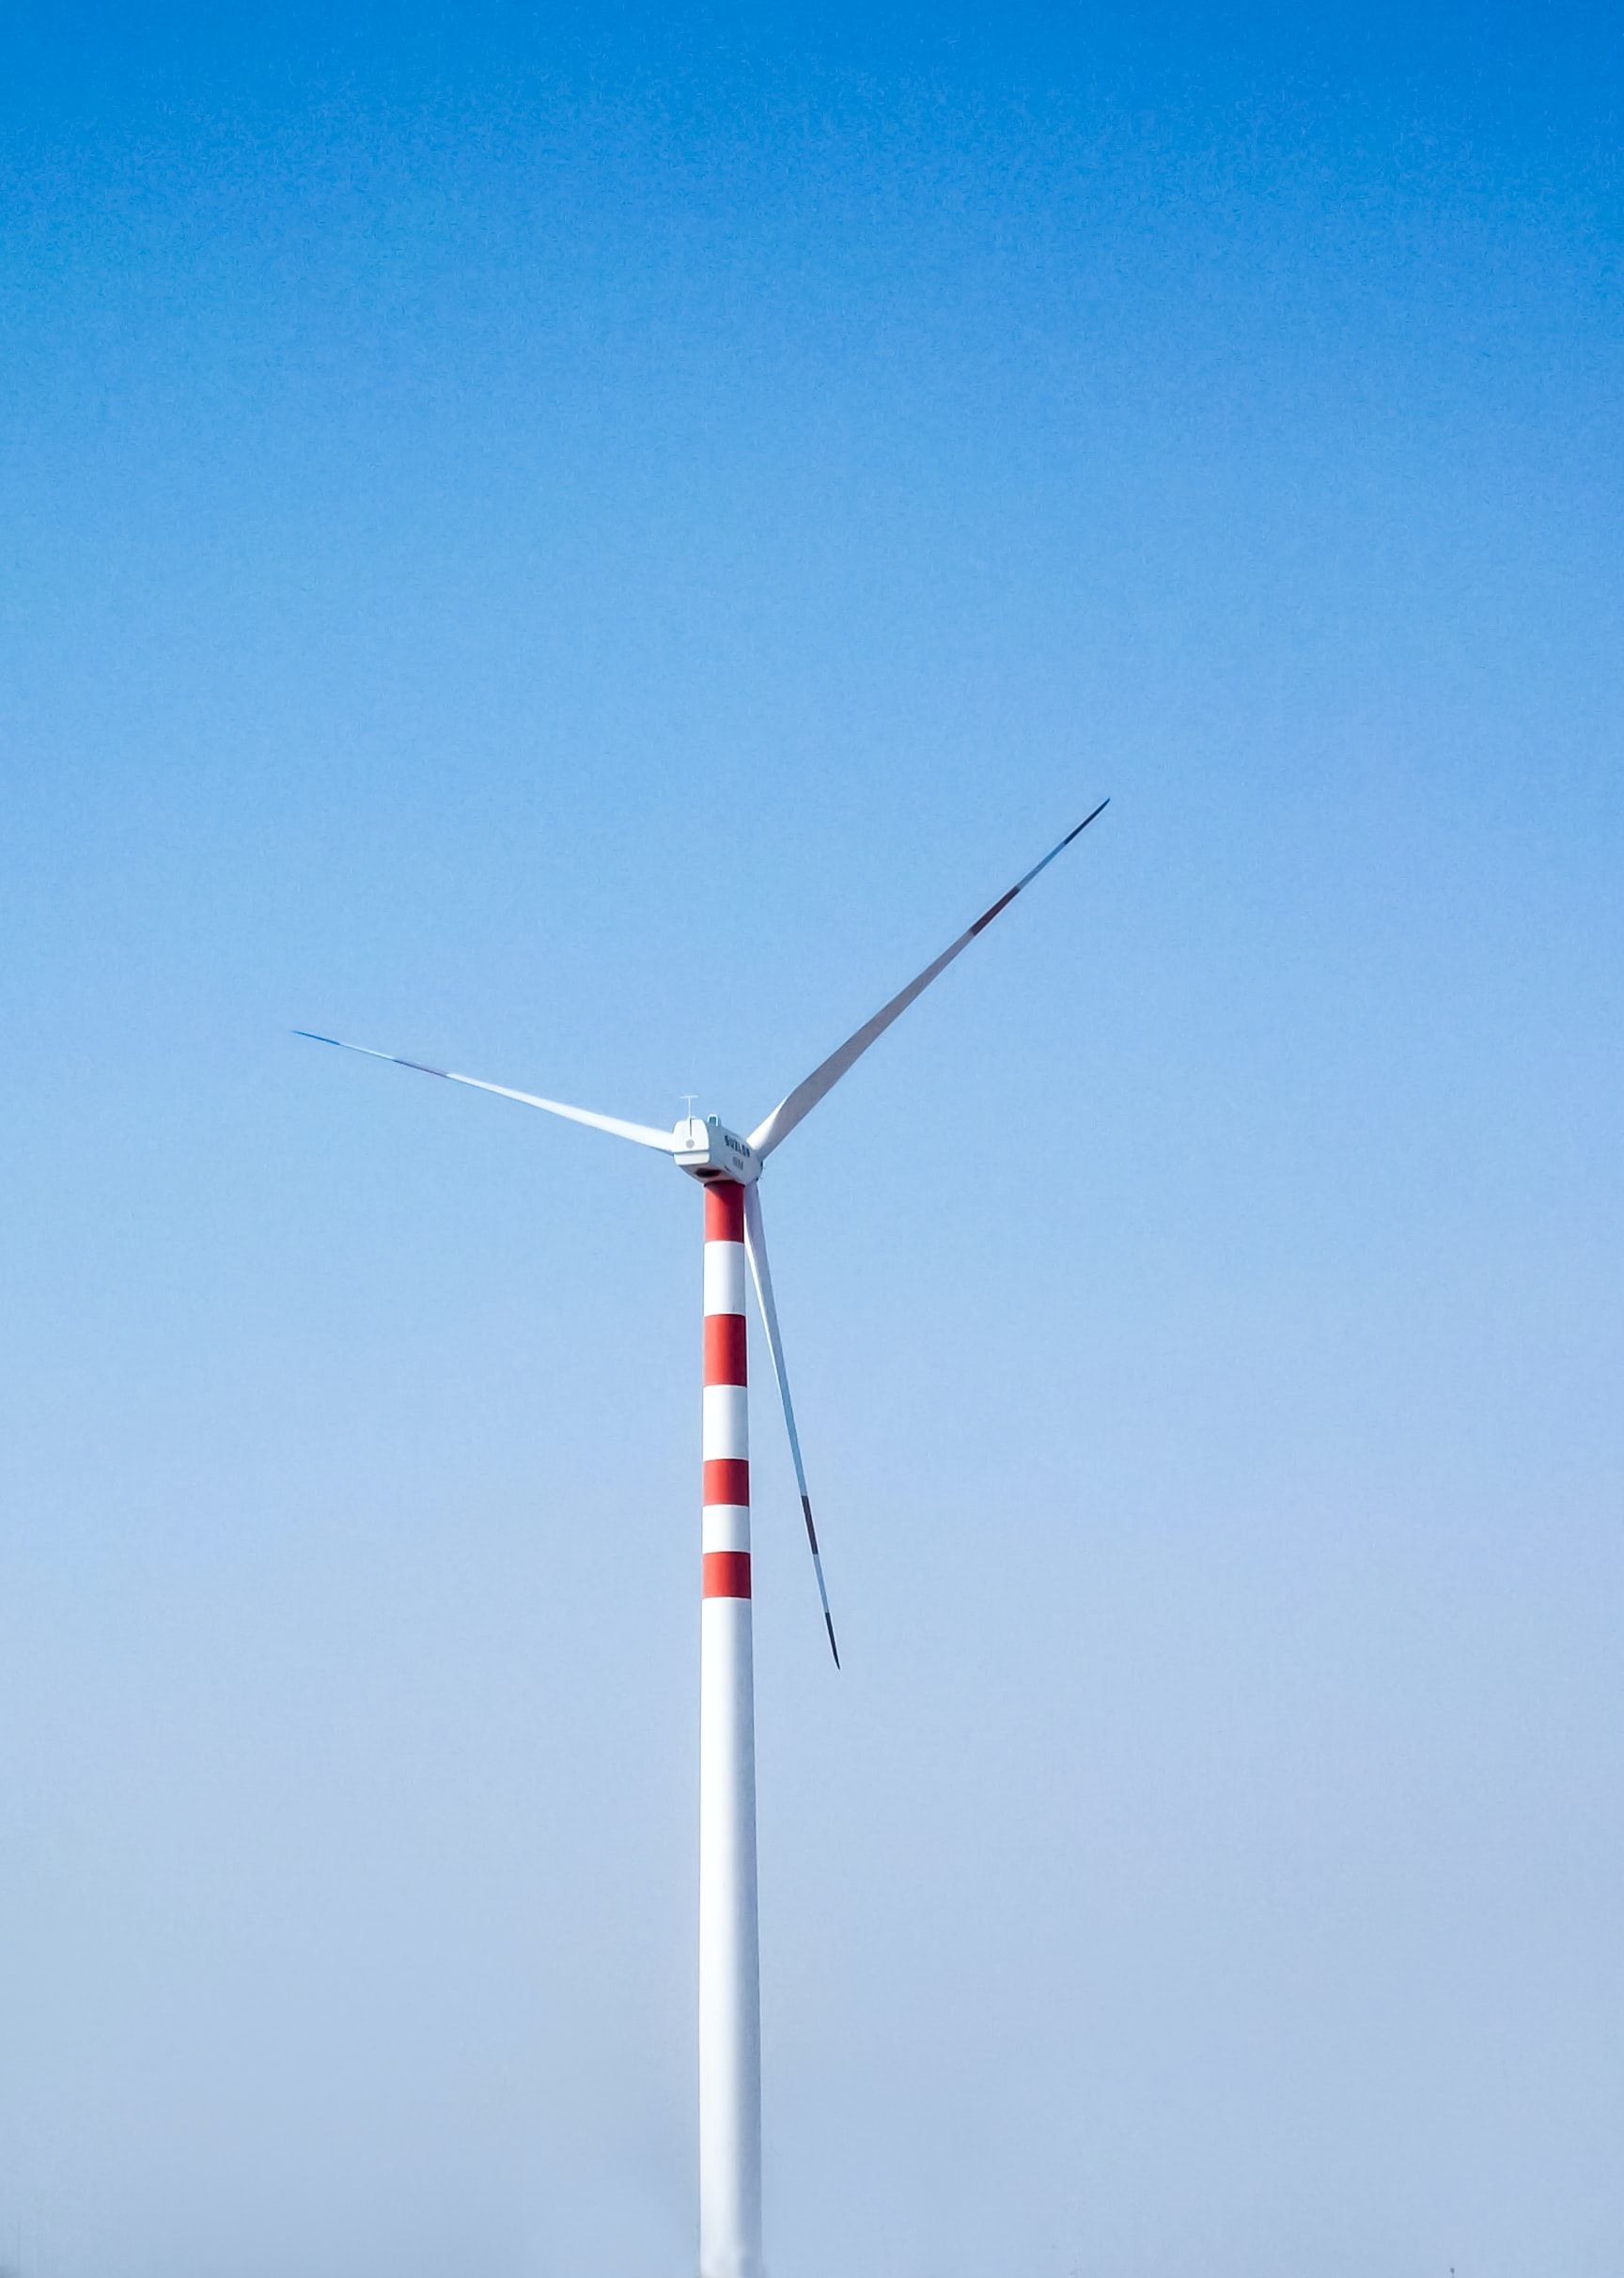 Lone wind turbine against a clear blue sky